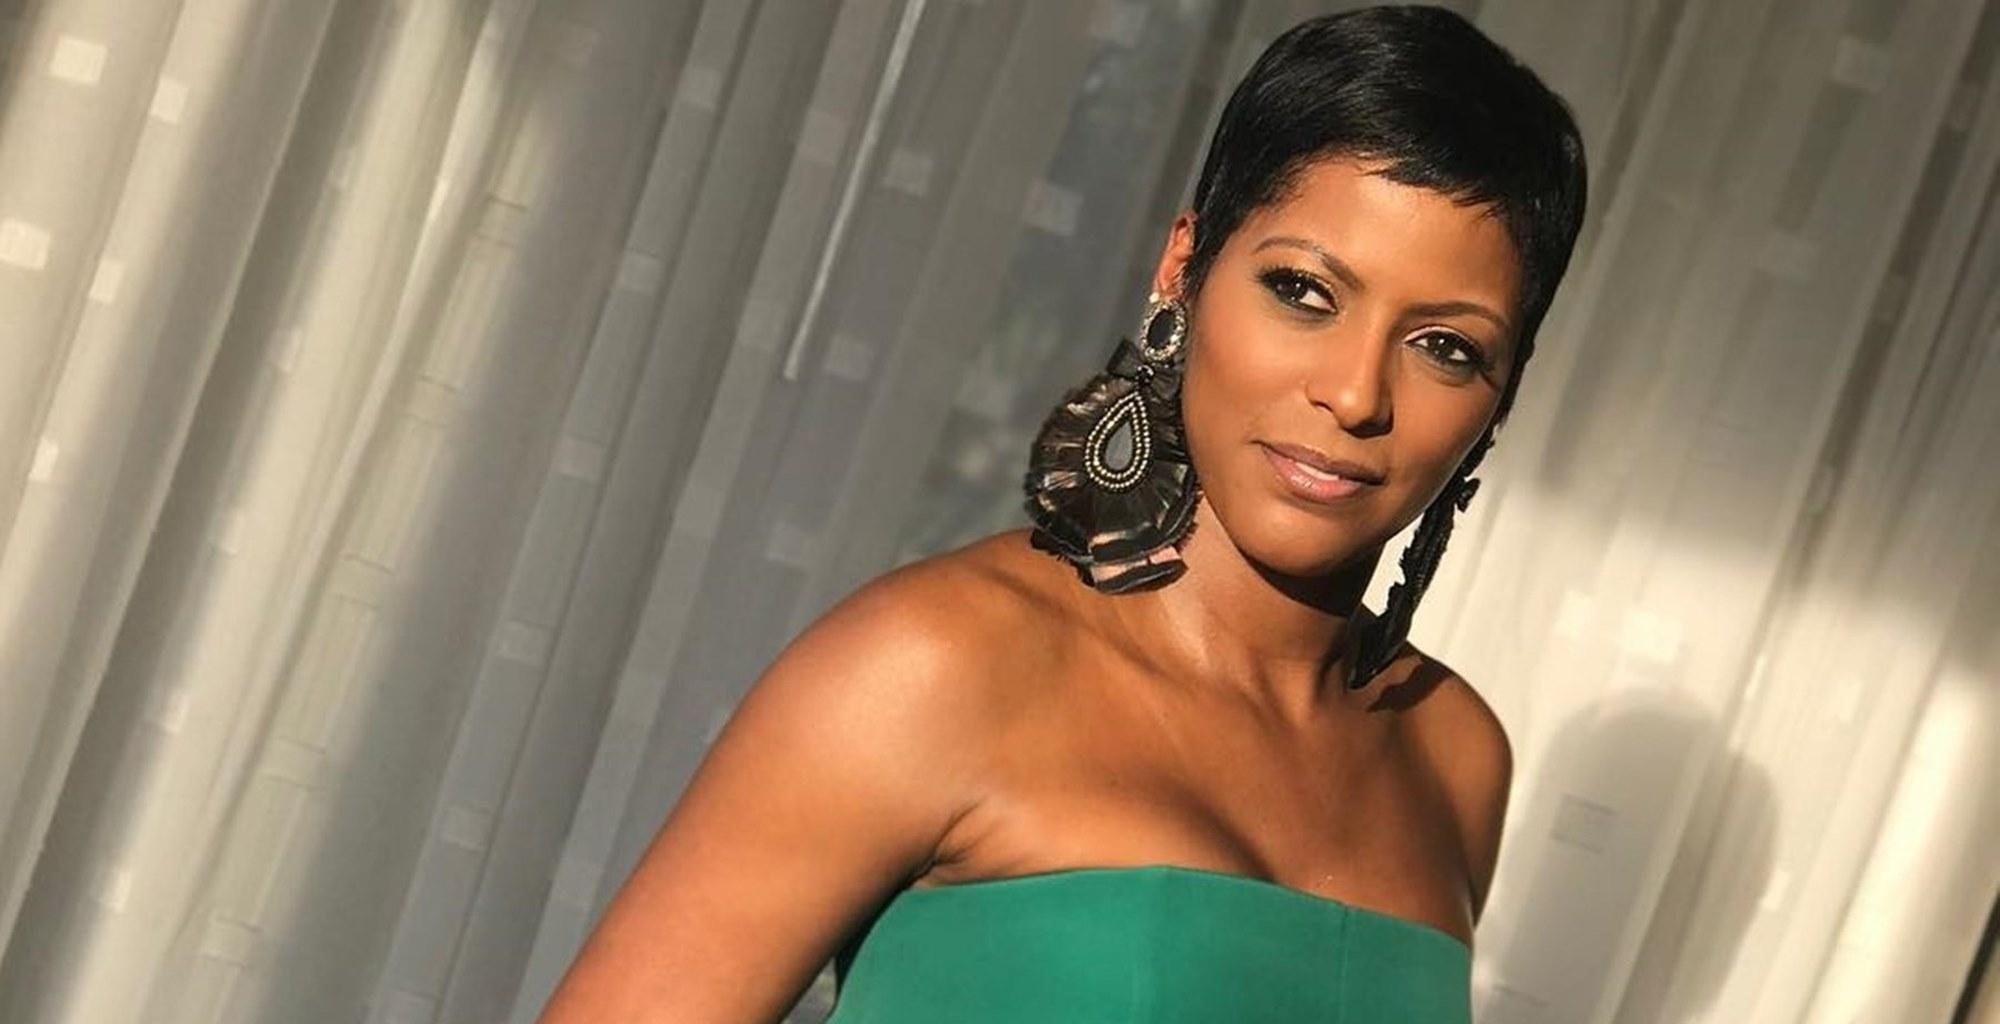 Tamron Hall Appears In Video With No Makeup And Hair Undone, Gives The Best Acceptance Speech Ever